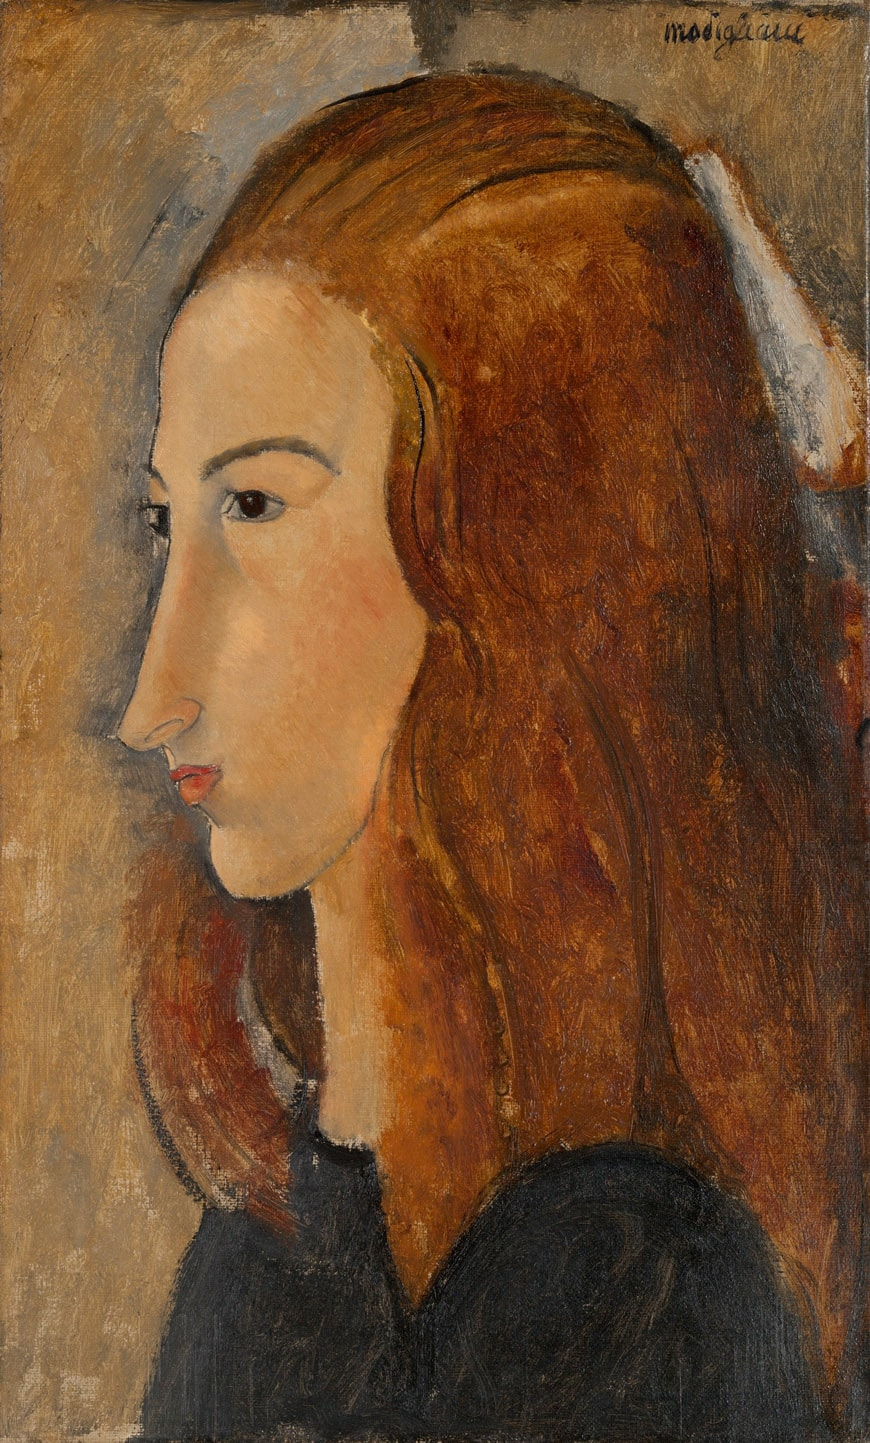 Modigliani-tate-modern-ID153-Portrait-of-a-Young-Woman-1918